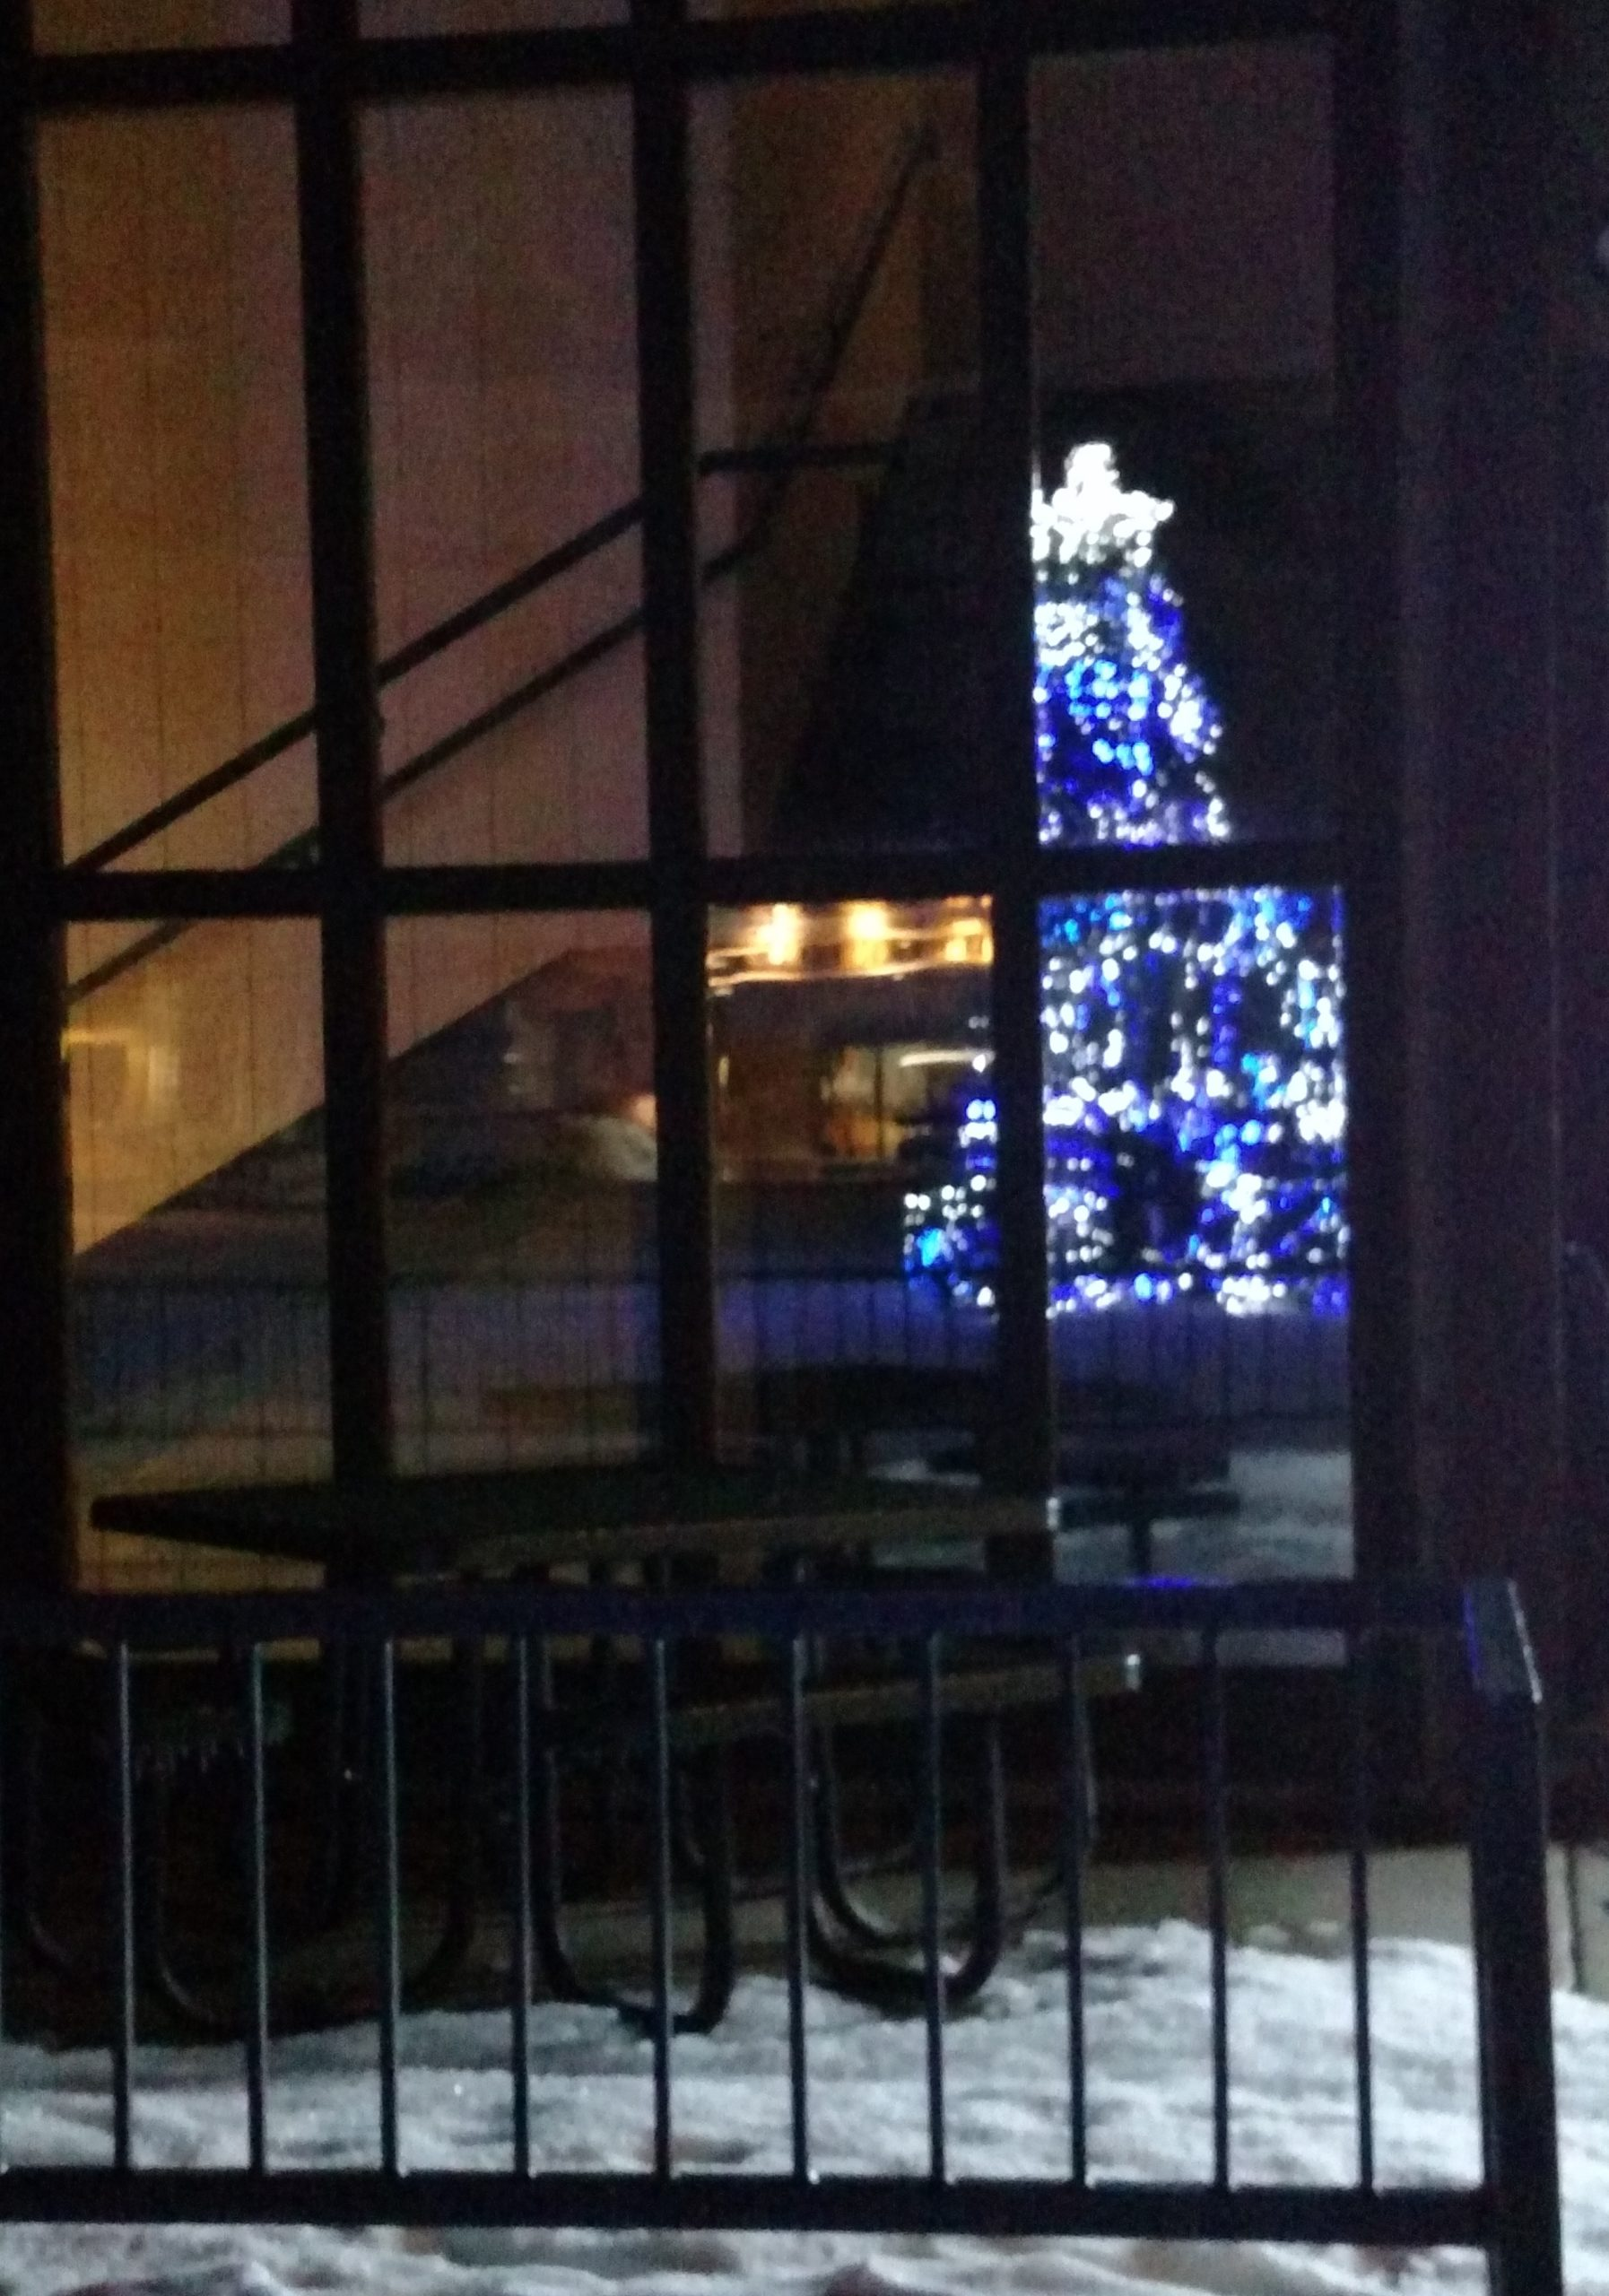 Christmas tree with blue and white lights reflected in the windowed wall of a nearby building